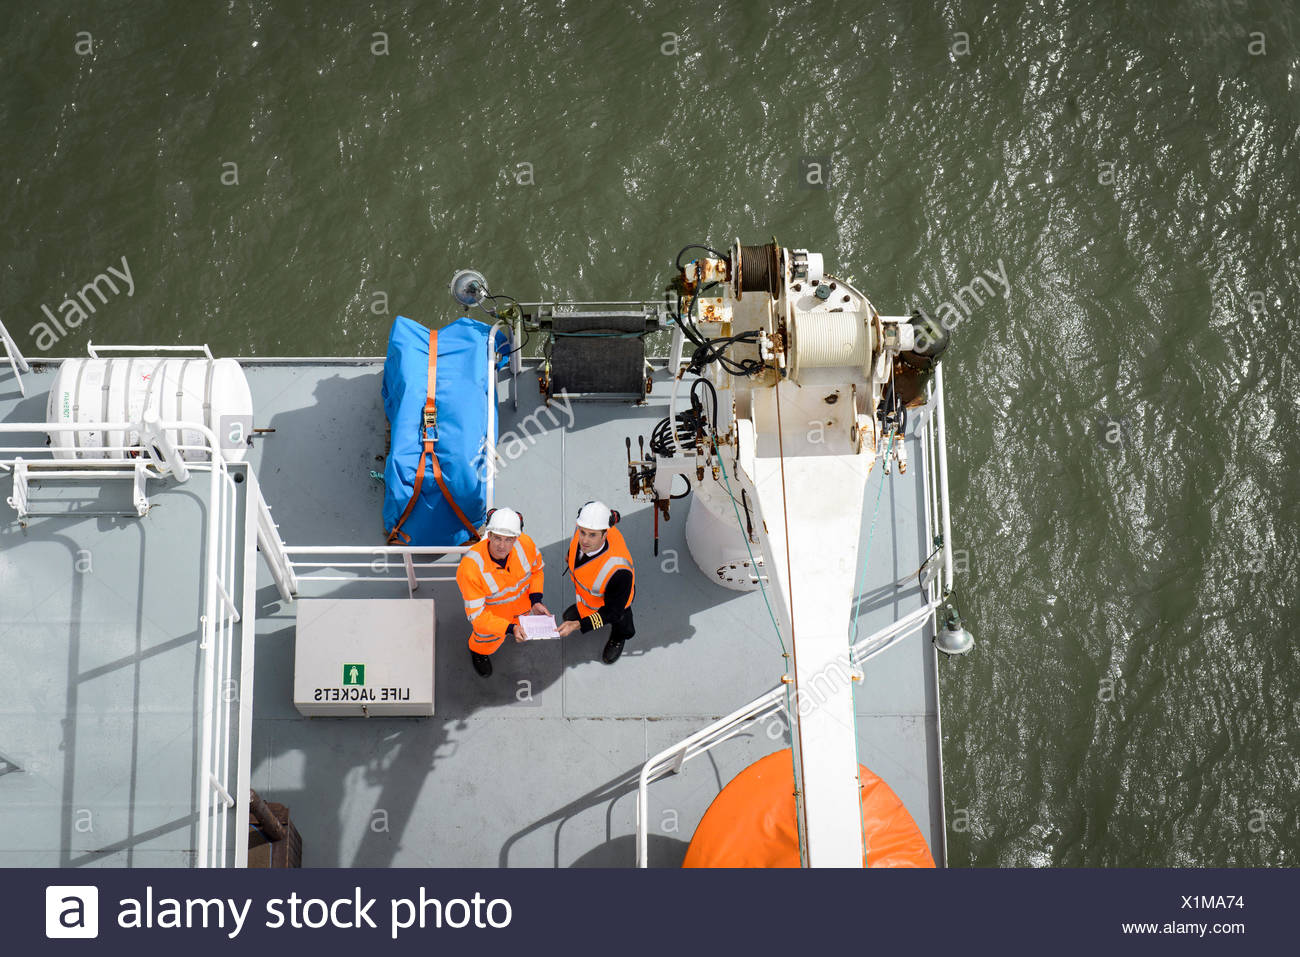 Ship's captain and worker on deck of container ship, overhead view - Stock Image